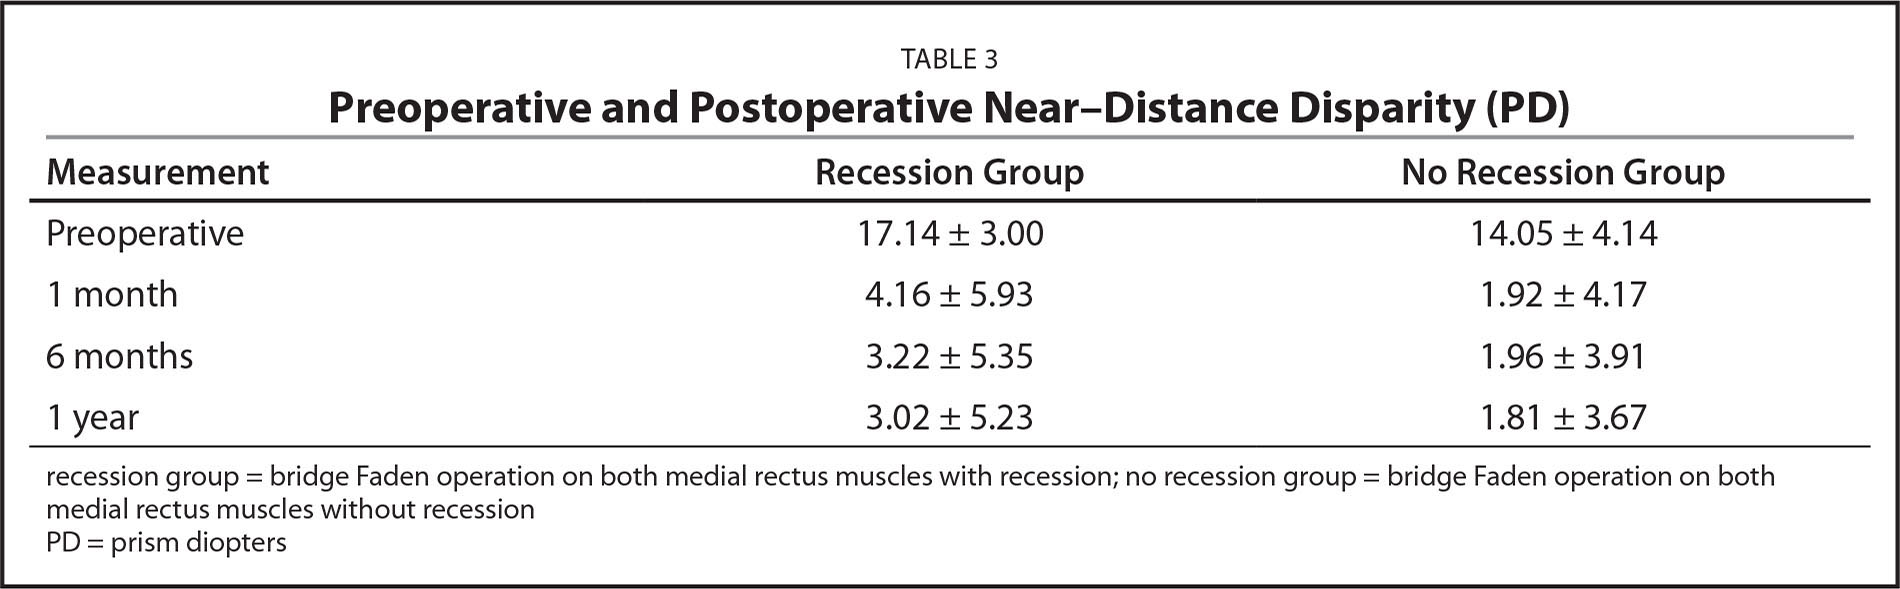 Preoperative and Postoperative Near–Distance Disparity (PD)